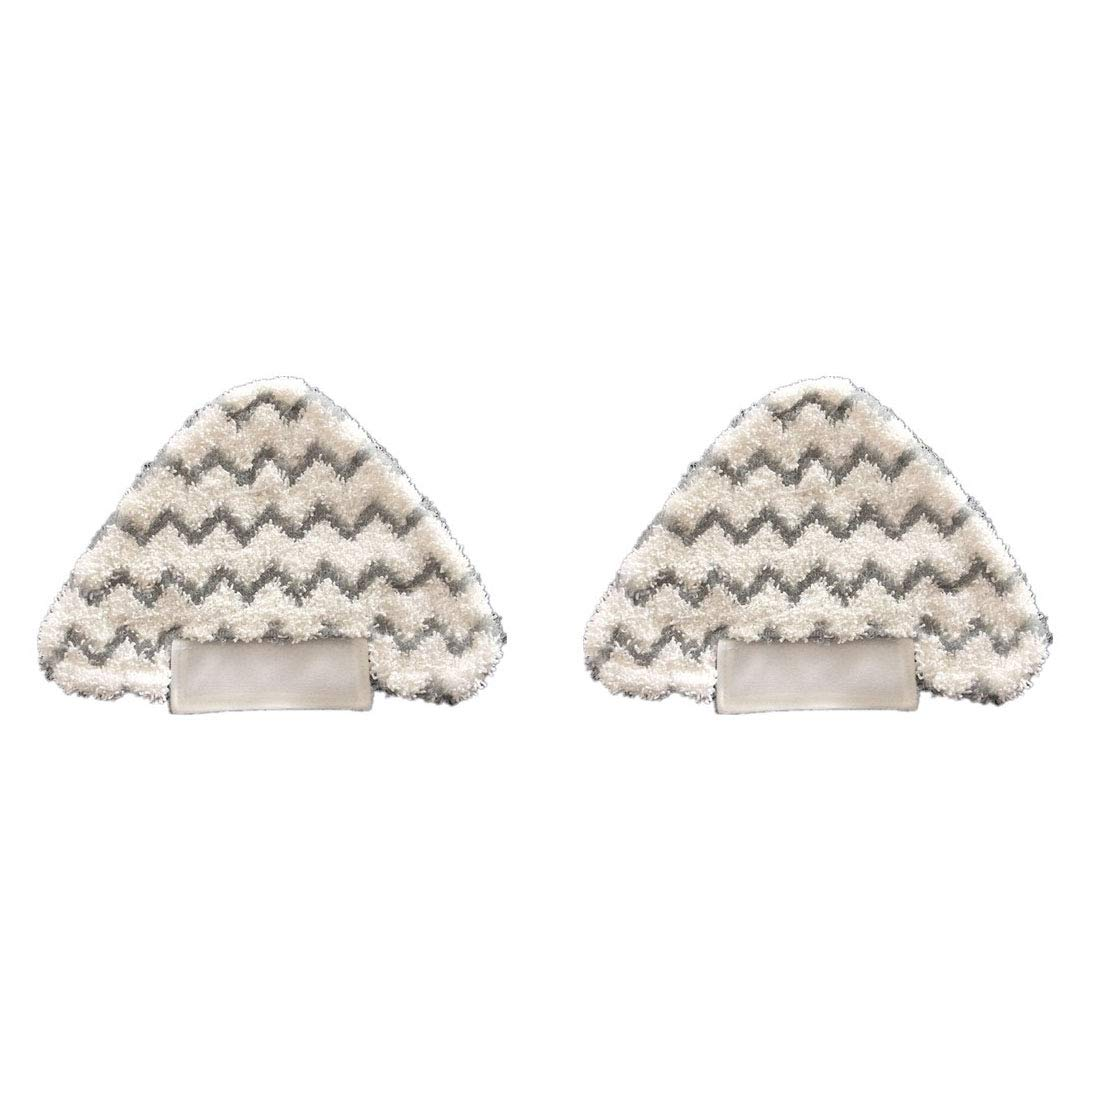 2 Triangle Replacement Pads Microfiber Touch Free Dirt Grip Pads for Shark Lift-Away Pro S3973 S3973D Genius Steam Pocket Mop S6002 S6001 S5003D S5001 S3973WM Replaces Part # P182W Washable